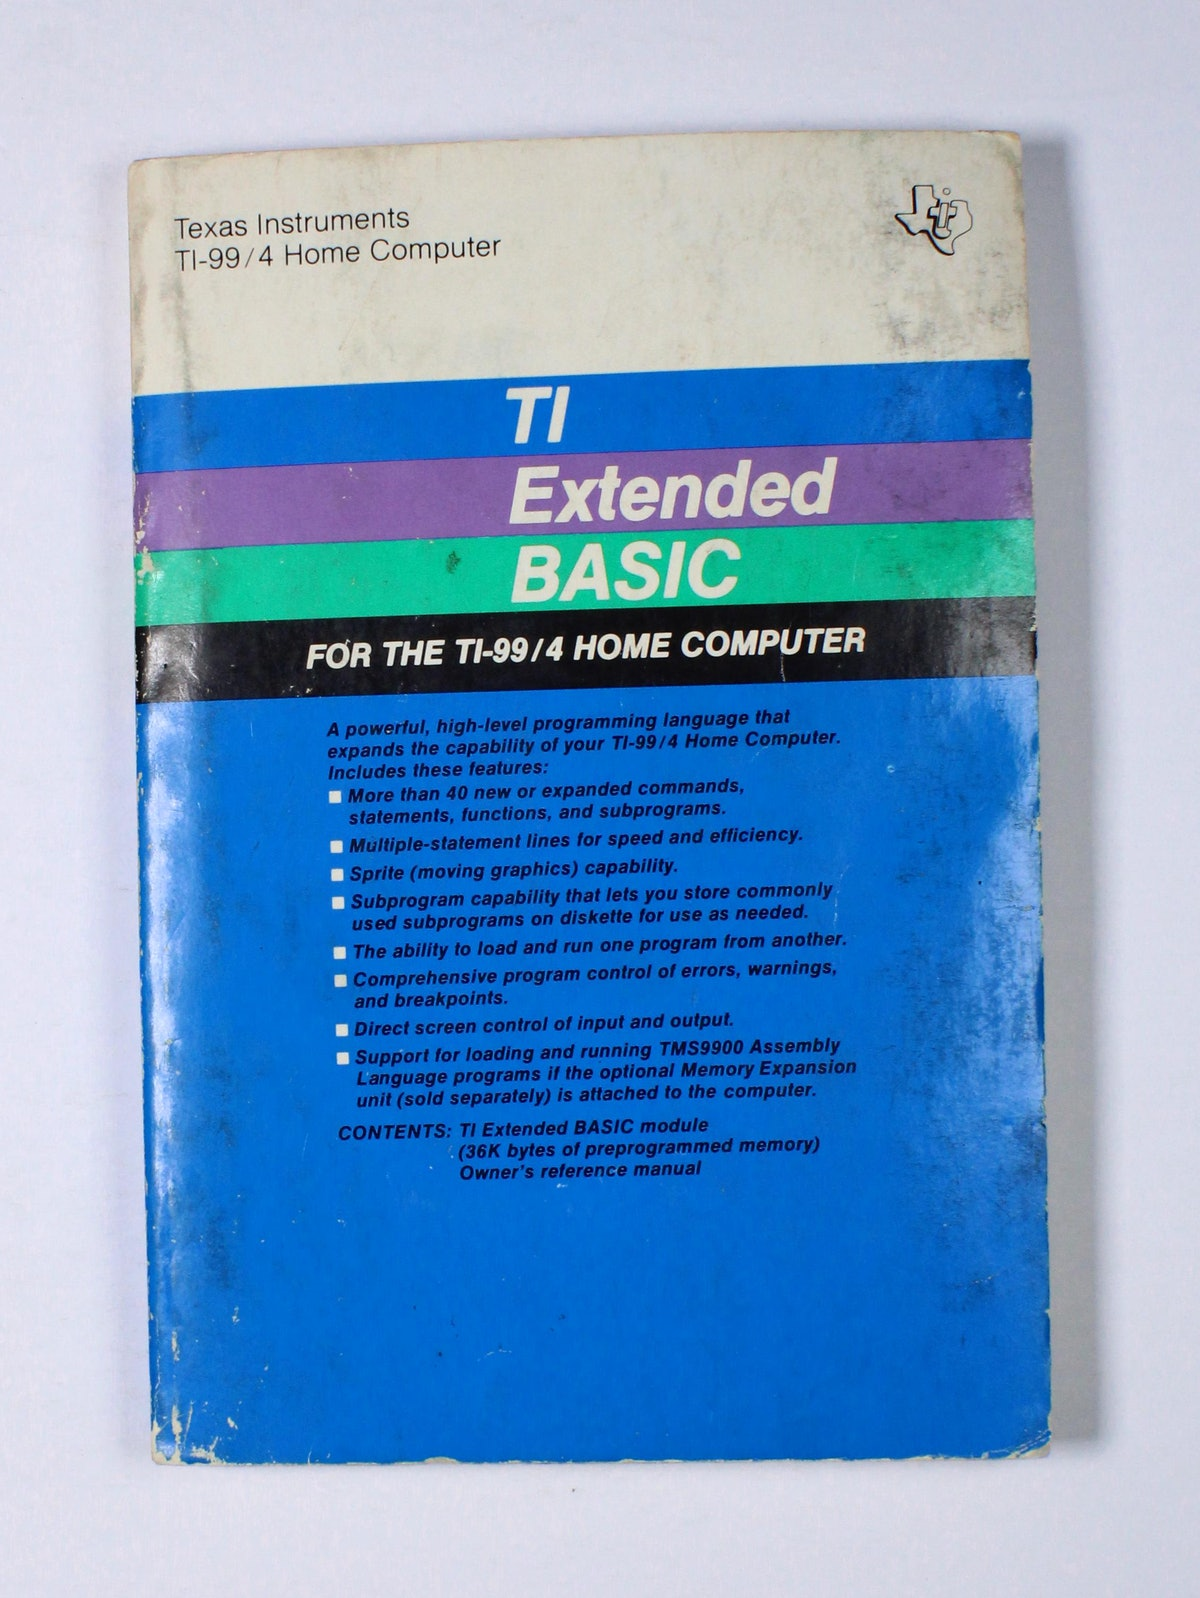 TI Extended BASIC: for the TI-99/4 home computer